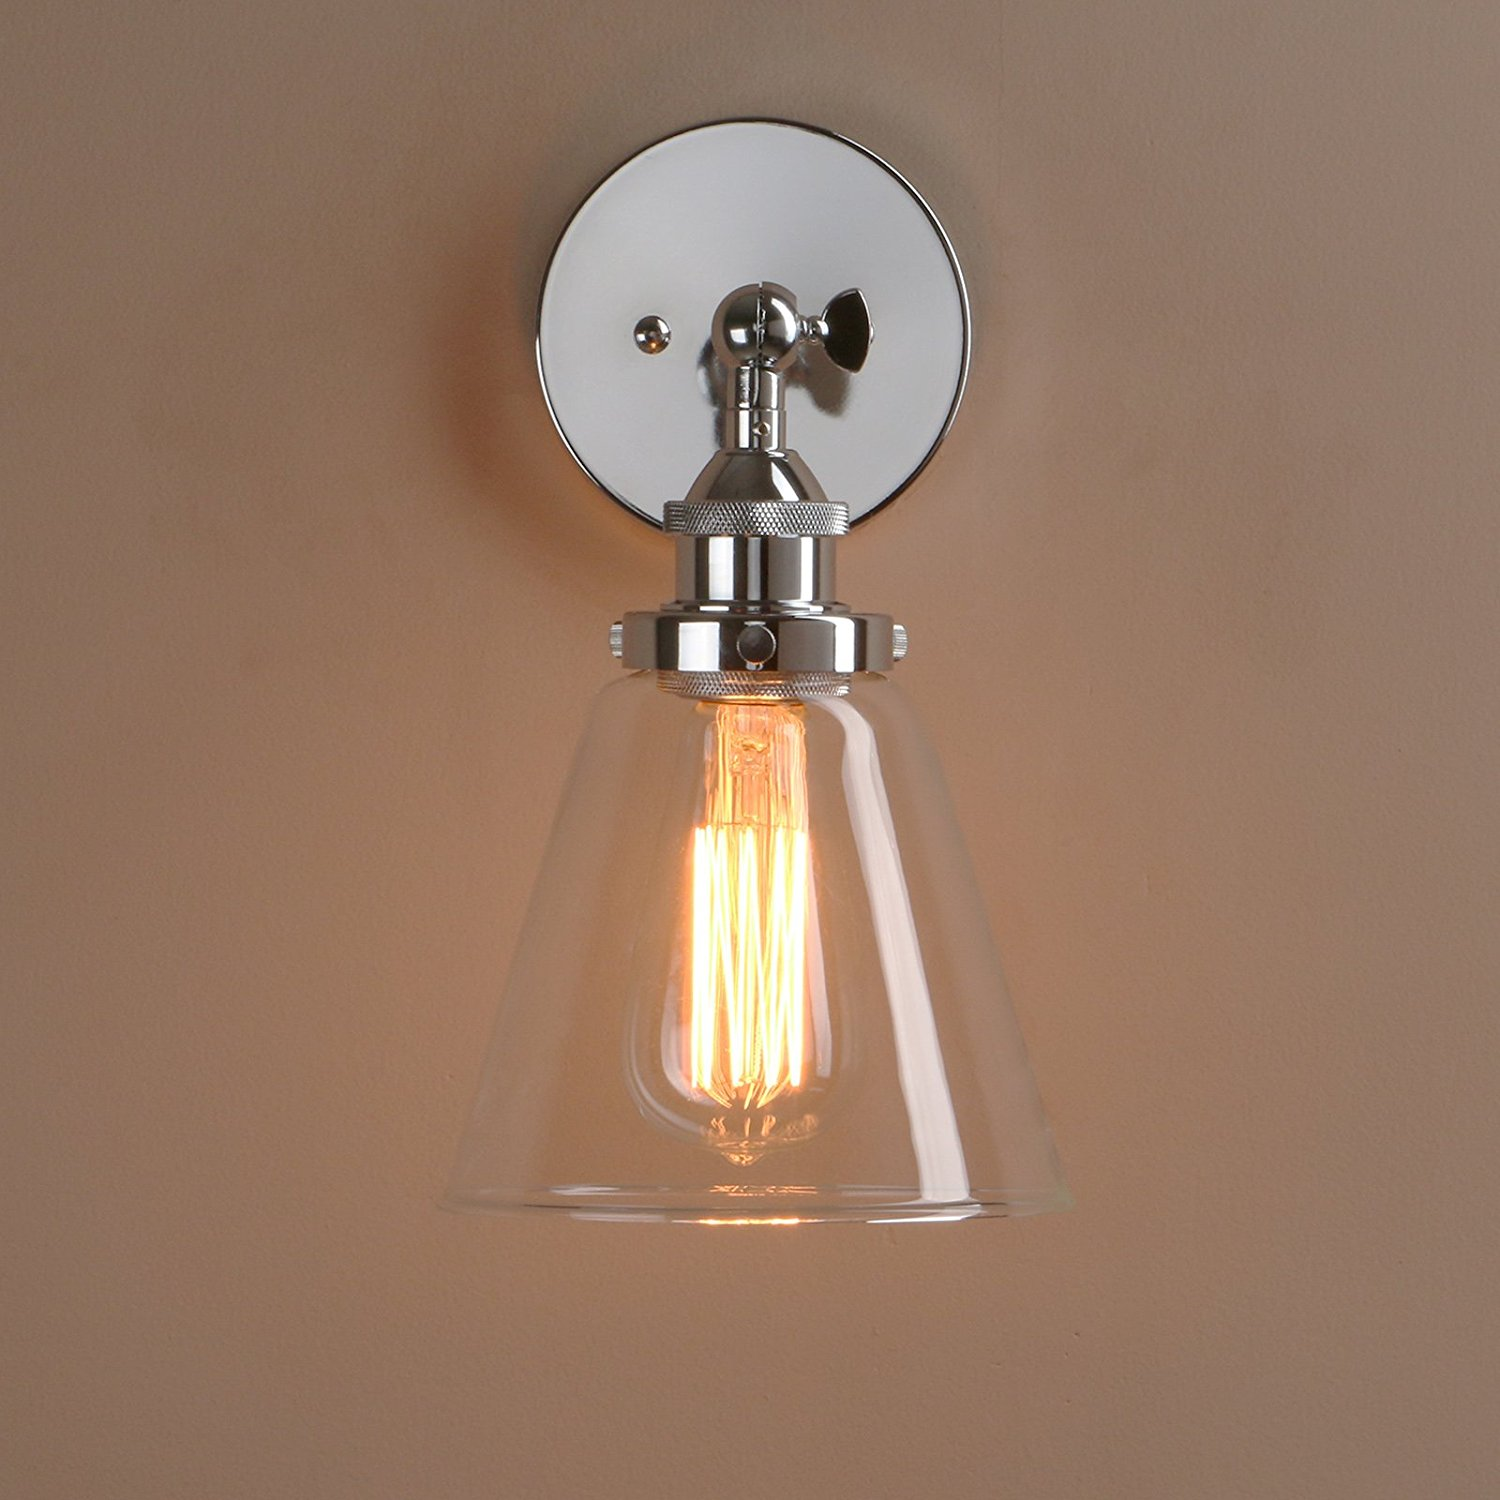 Get Quotations Pathson Loft Vintage Wall Lamp Dia 6 4 Sconce With One Light In Funnel Clear